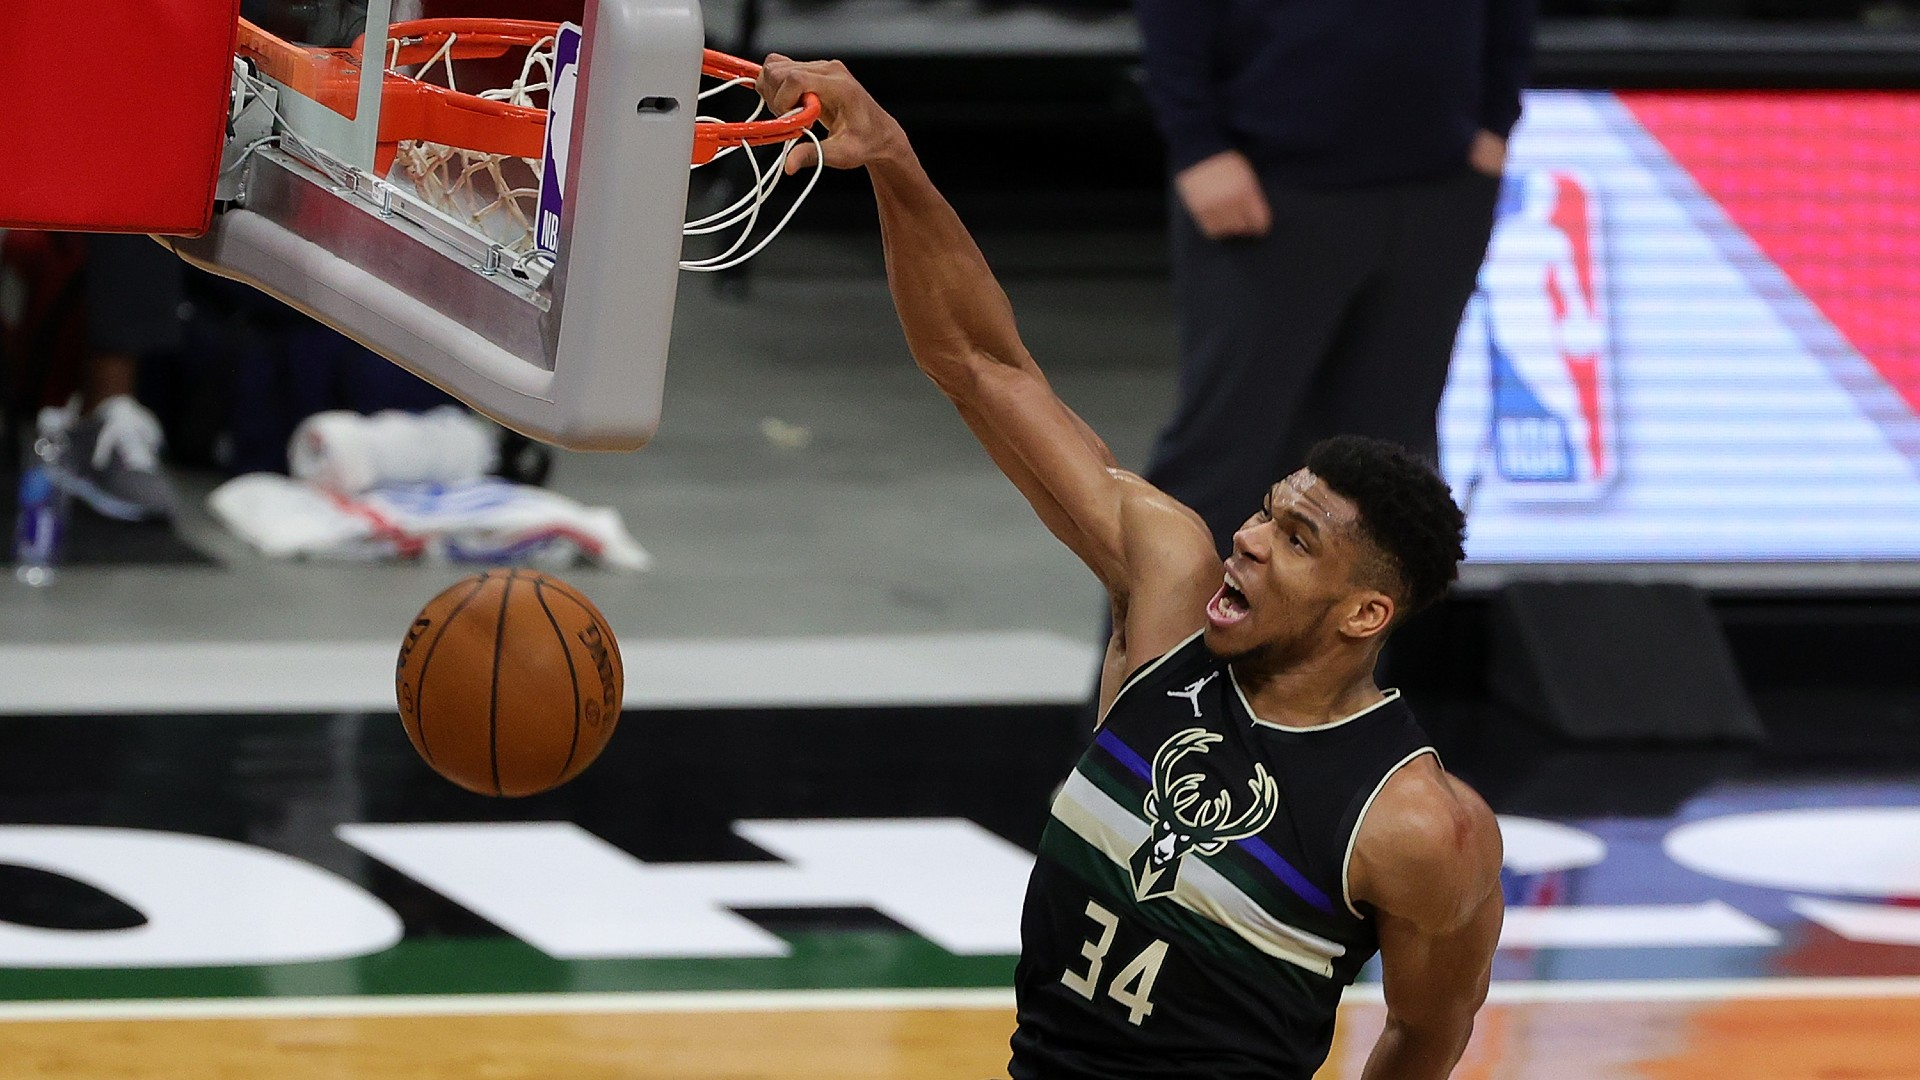 Giannis Antetokounmpo fuelled the Milwaukee Bucks to a come-from-behind win, while LeBron James and the Los Angeles Lakers celebrated a win.